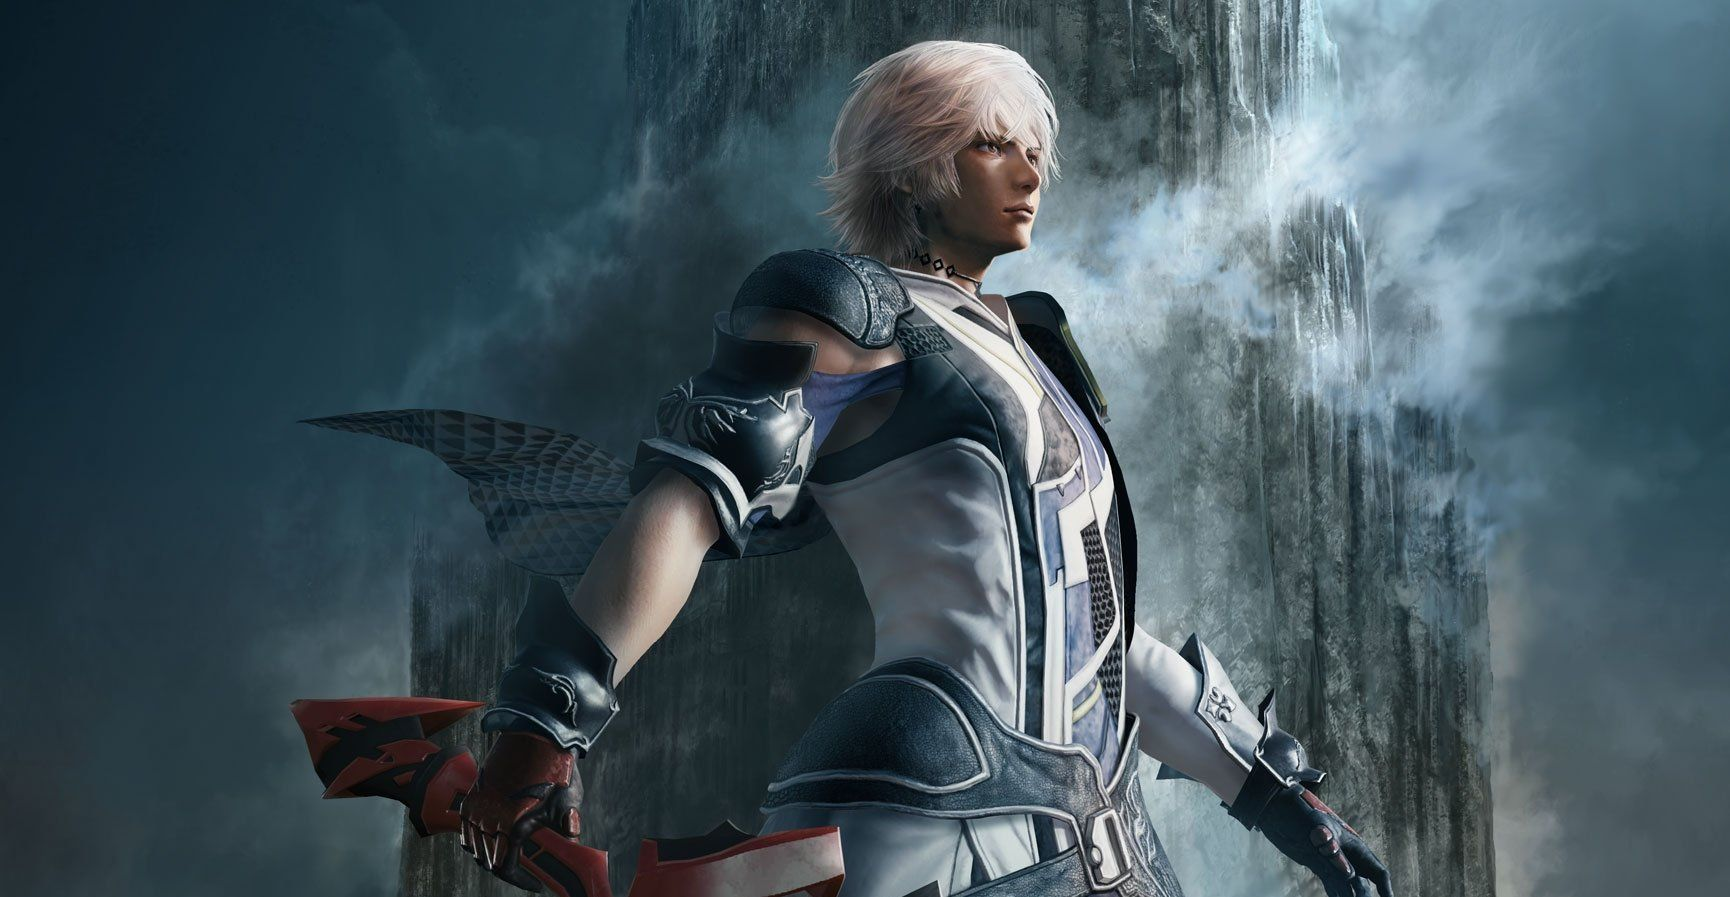 Mobius Final Fantasy Announces Its Shutting Down Servers Forever